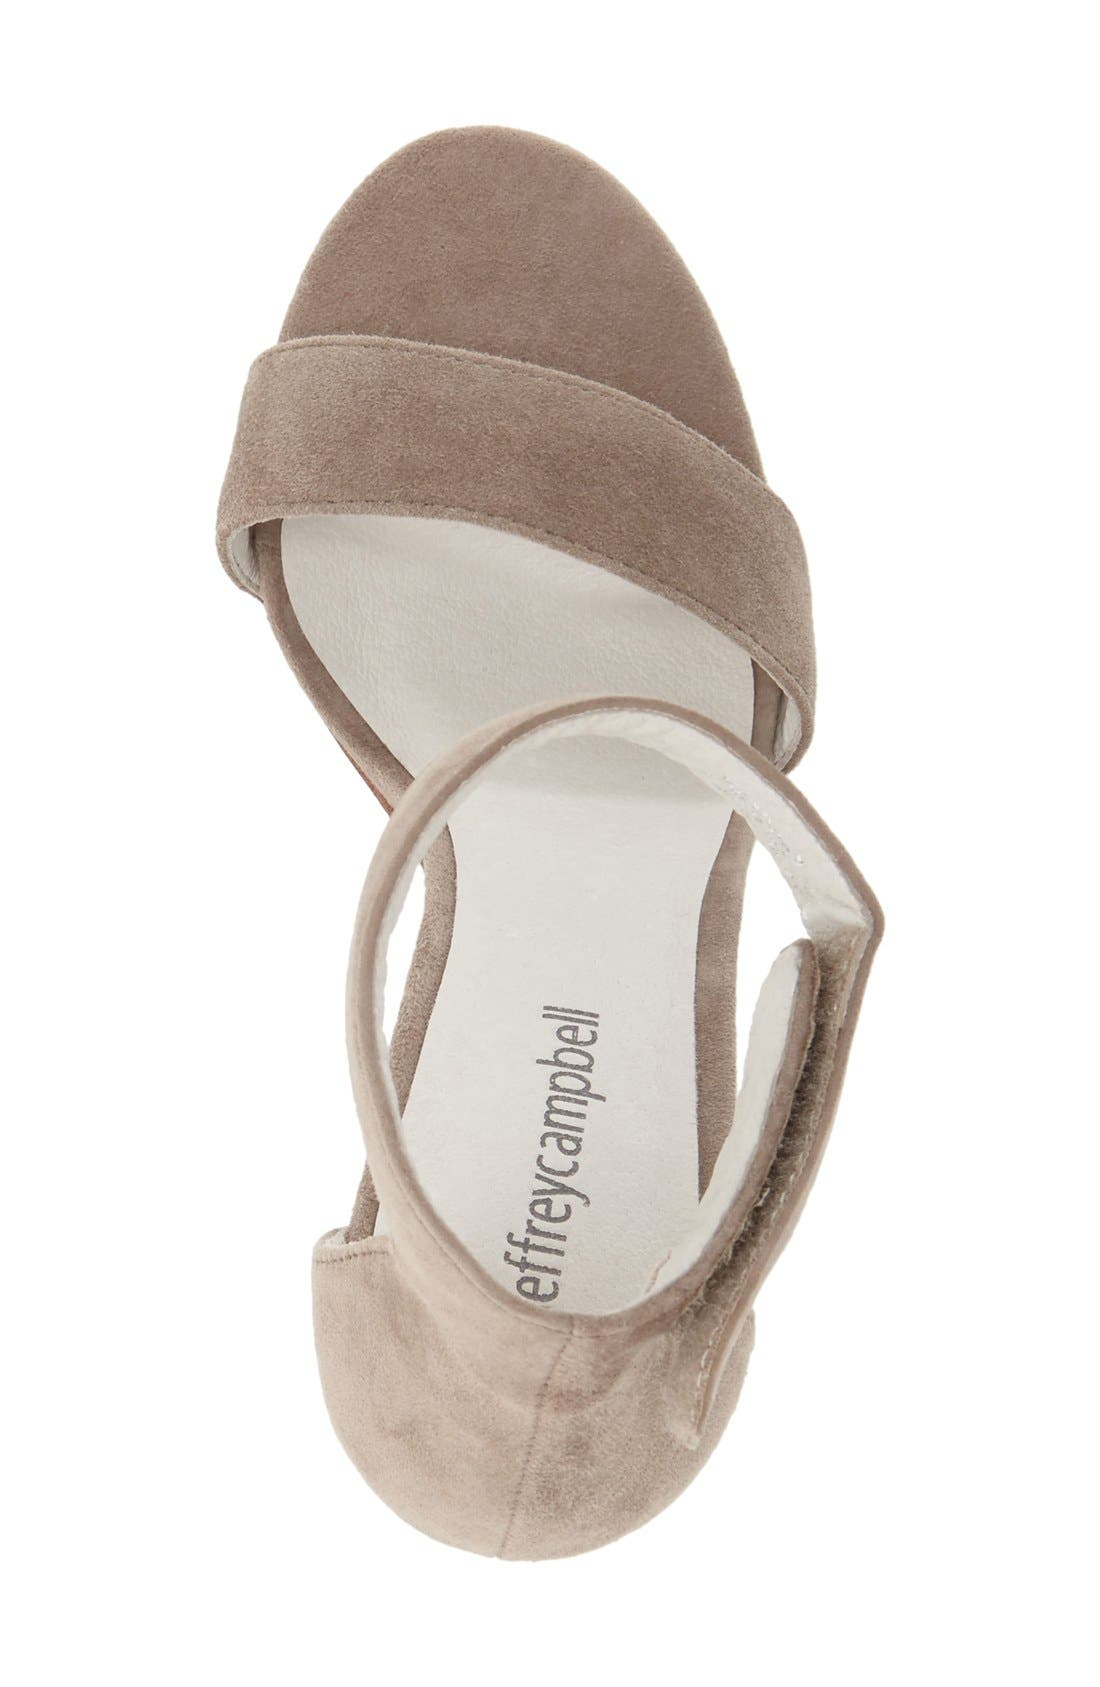 'Lindsay' Ankle Strap Sandal,                             Alternate thumbnail 3, color,                             Taupe Suede